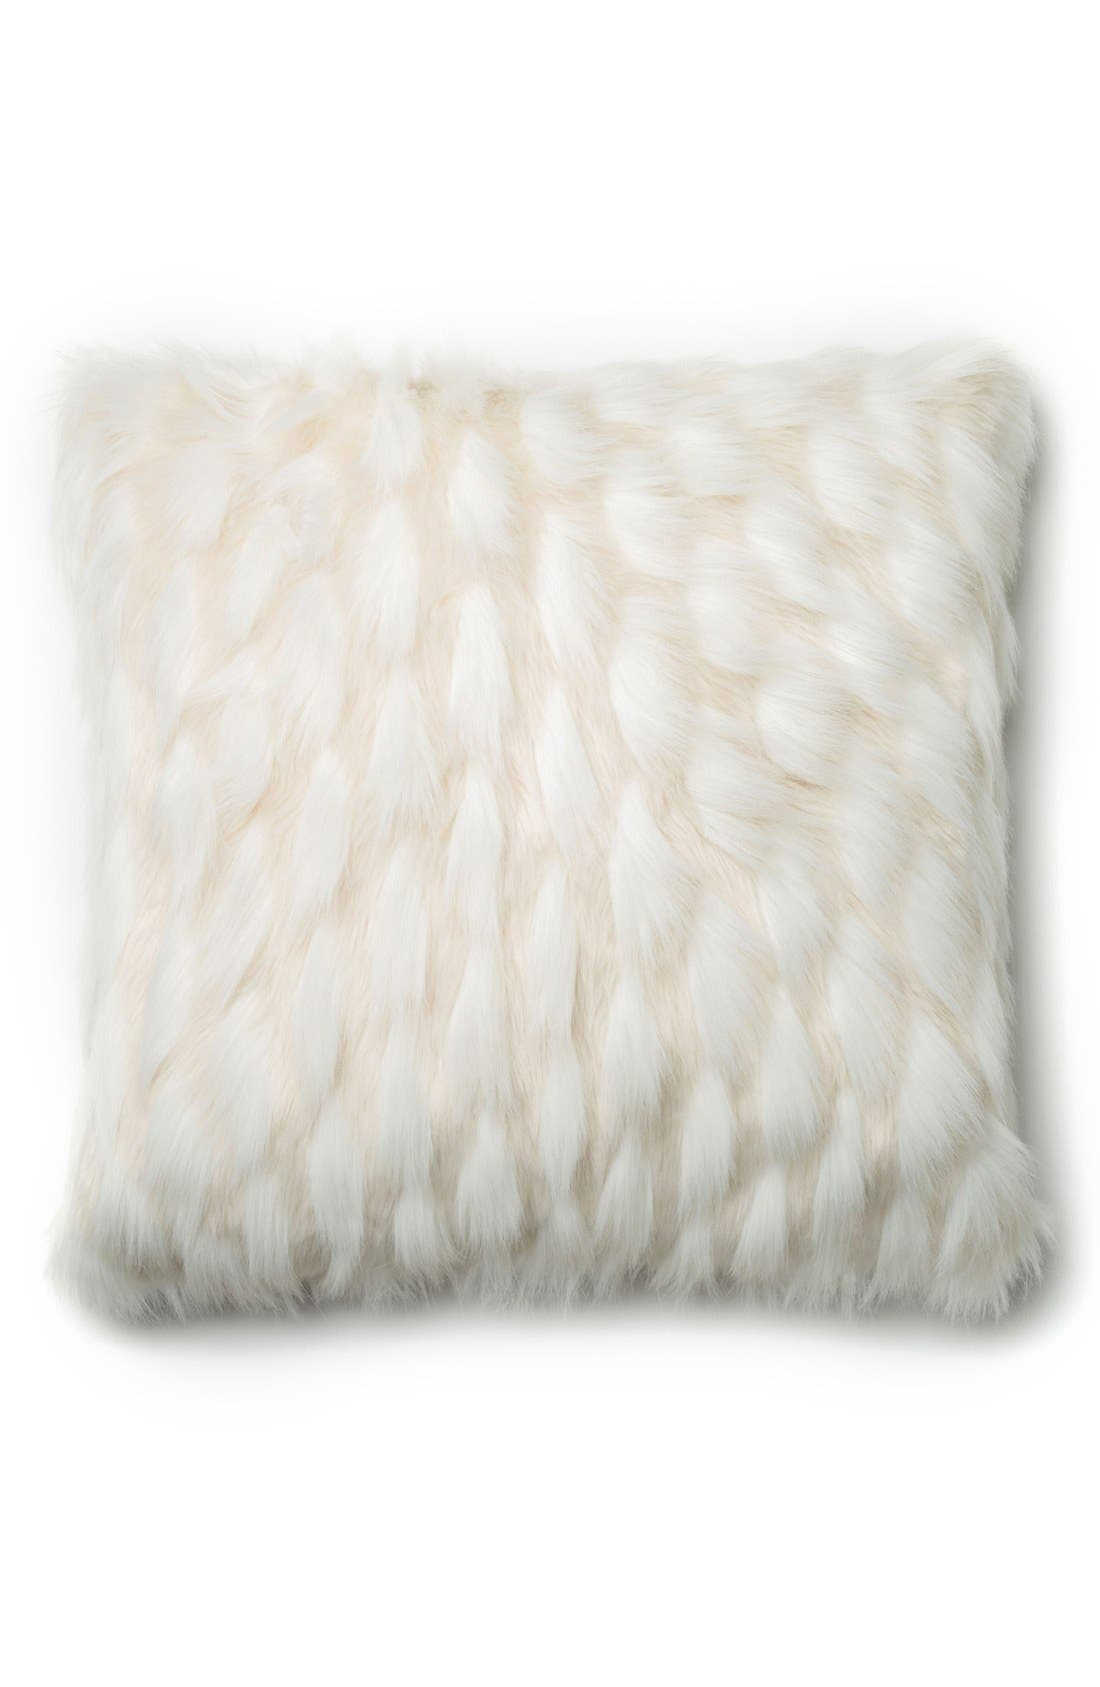 Alternate Image 1 Selected - Loloi Sculpted Faux Fur Pillow